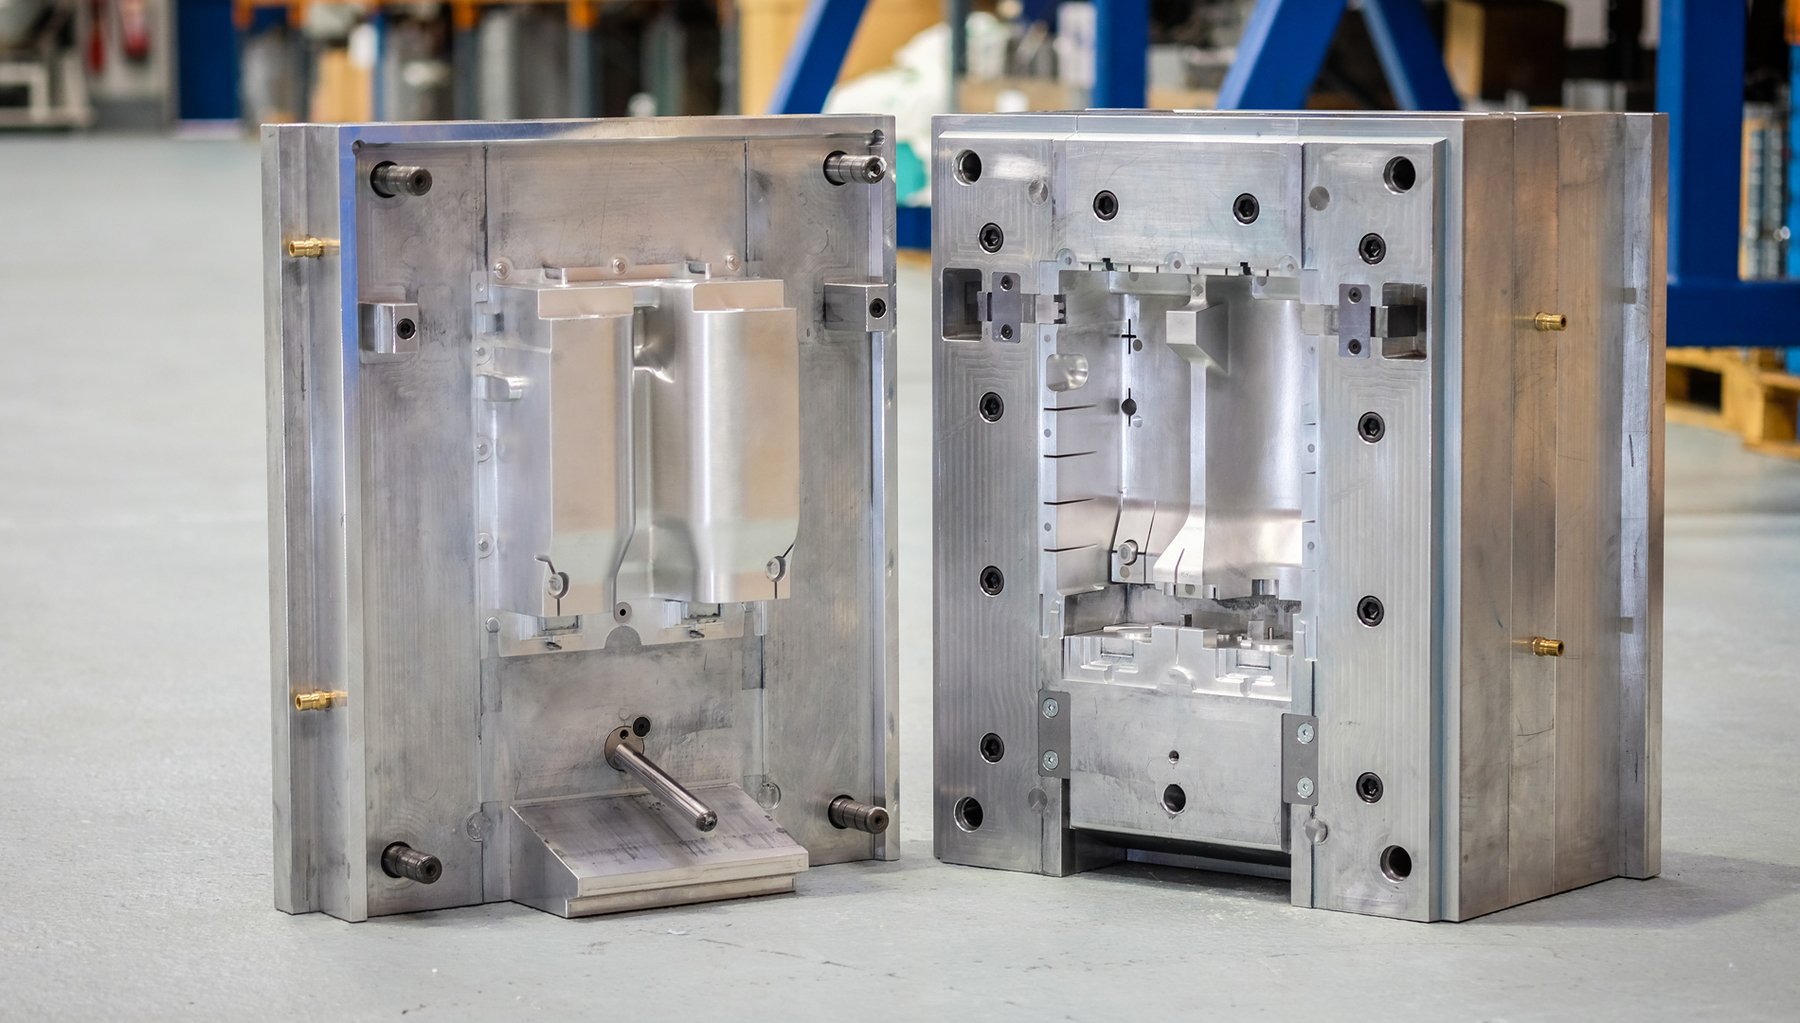 3D-Printed Injection Molding: The Future Of Rapid Prototyping?